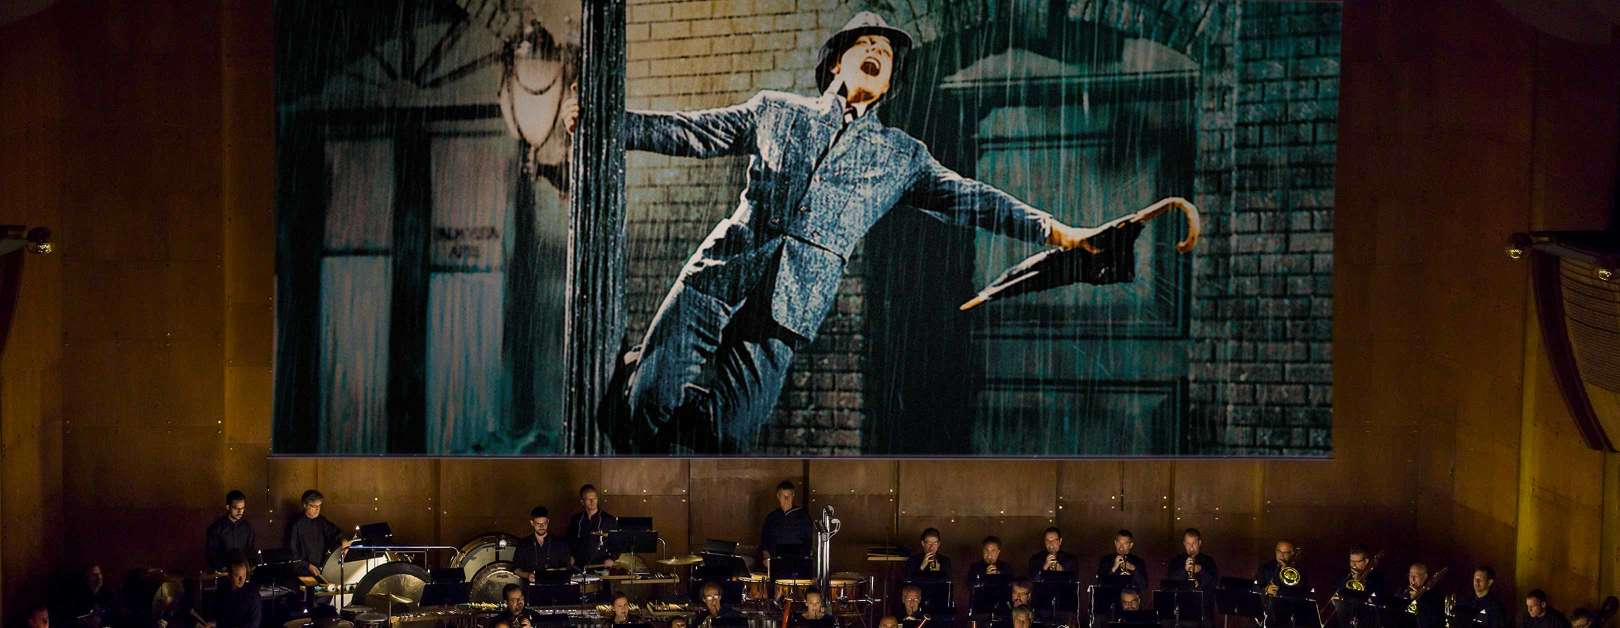 CANCELLED: Spring Gala: Singin' in the Rain in Concert